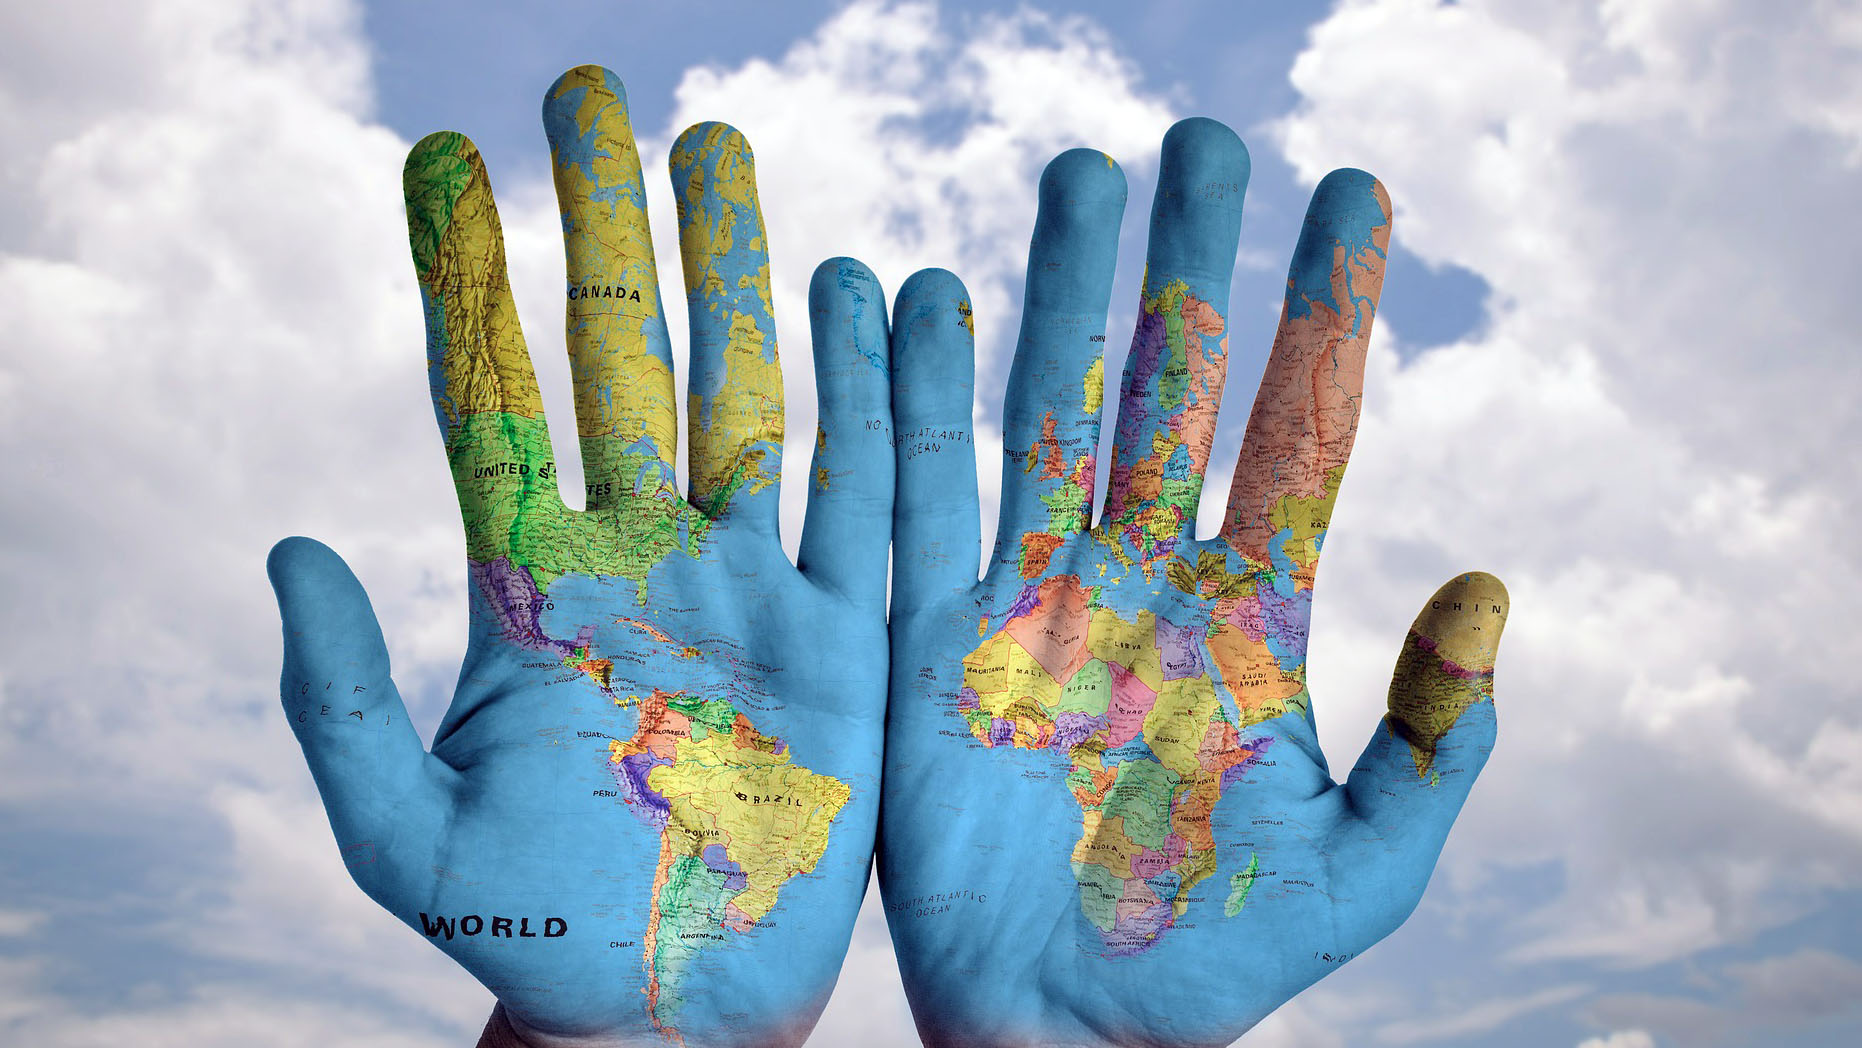 Open hands painted with globe